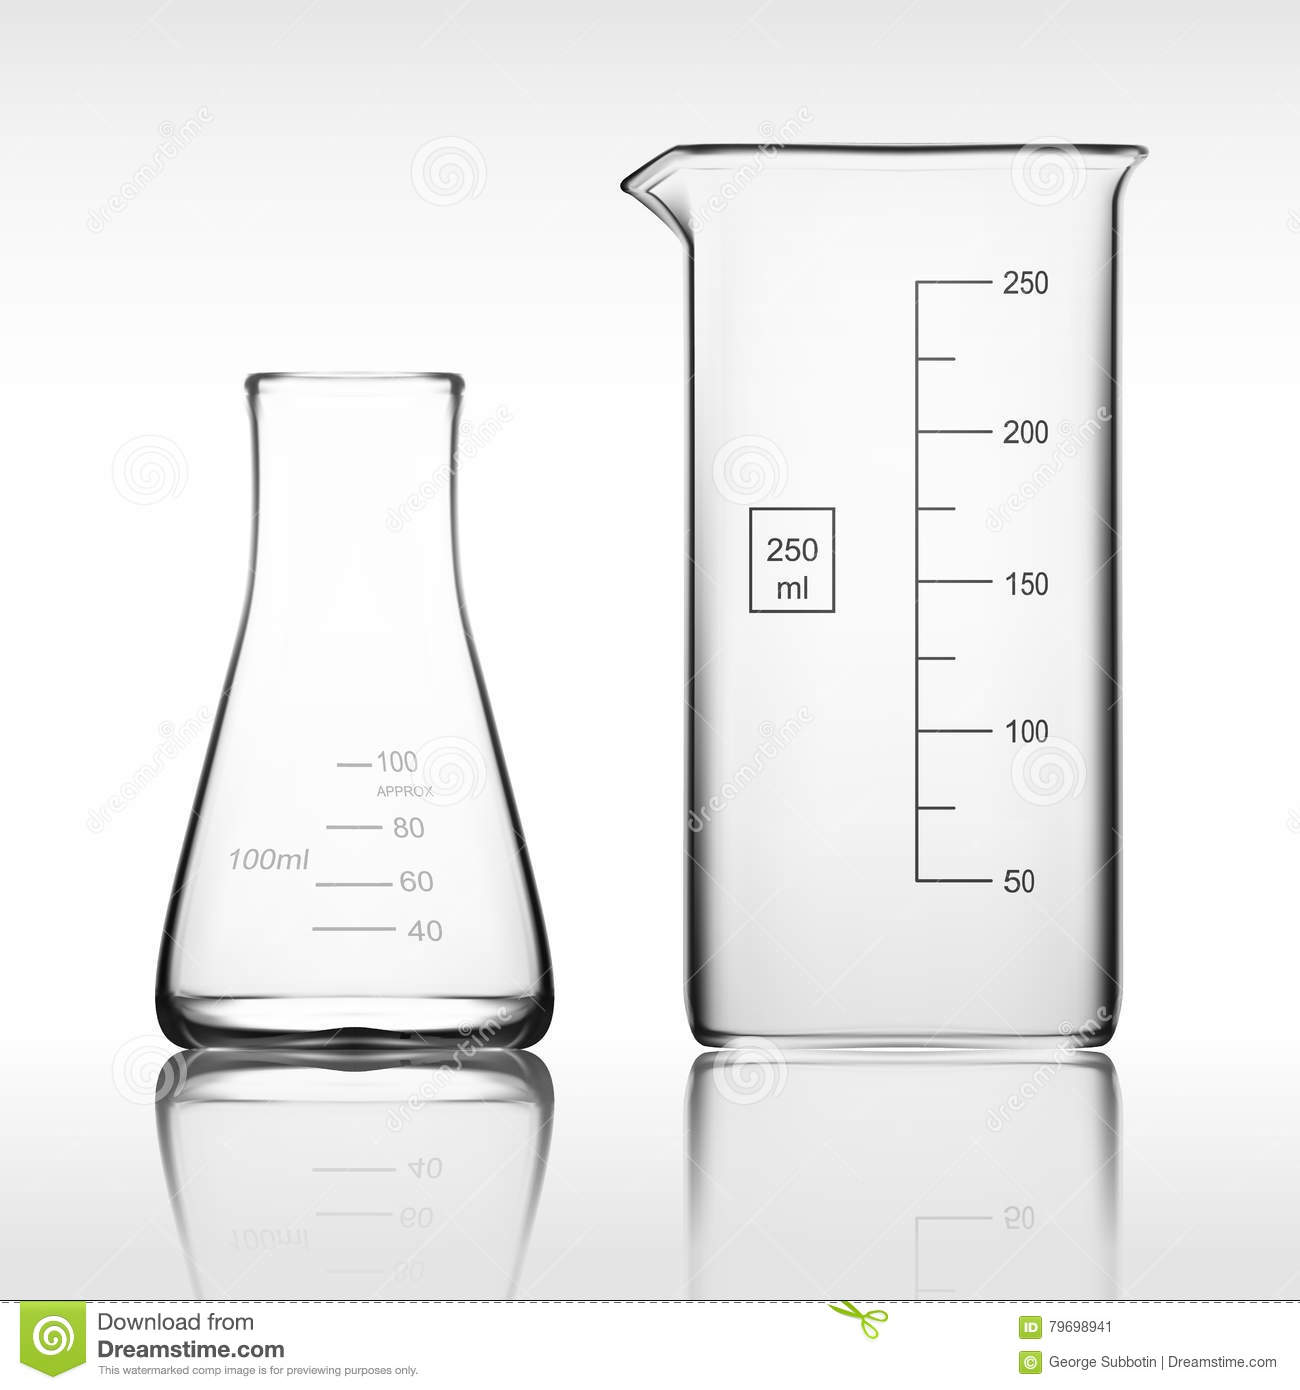 Two Chemical Laboratory Glassware Or Beaker Glass Equipment Empty Clear Test Tube Stock Image